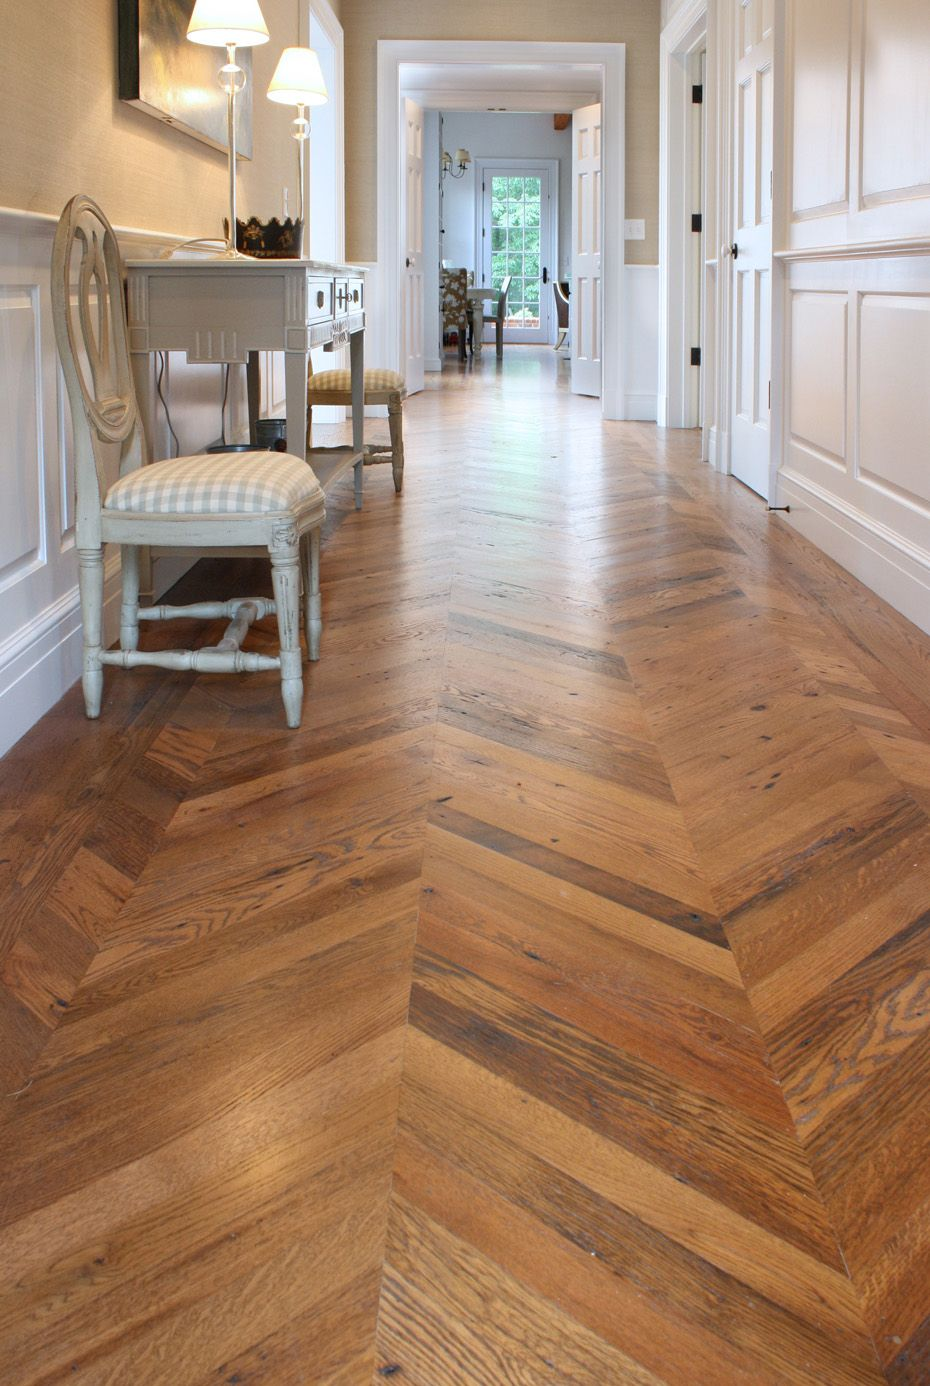 Custom Chevron Wooden Floors  Spaces  Misc Interior